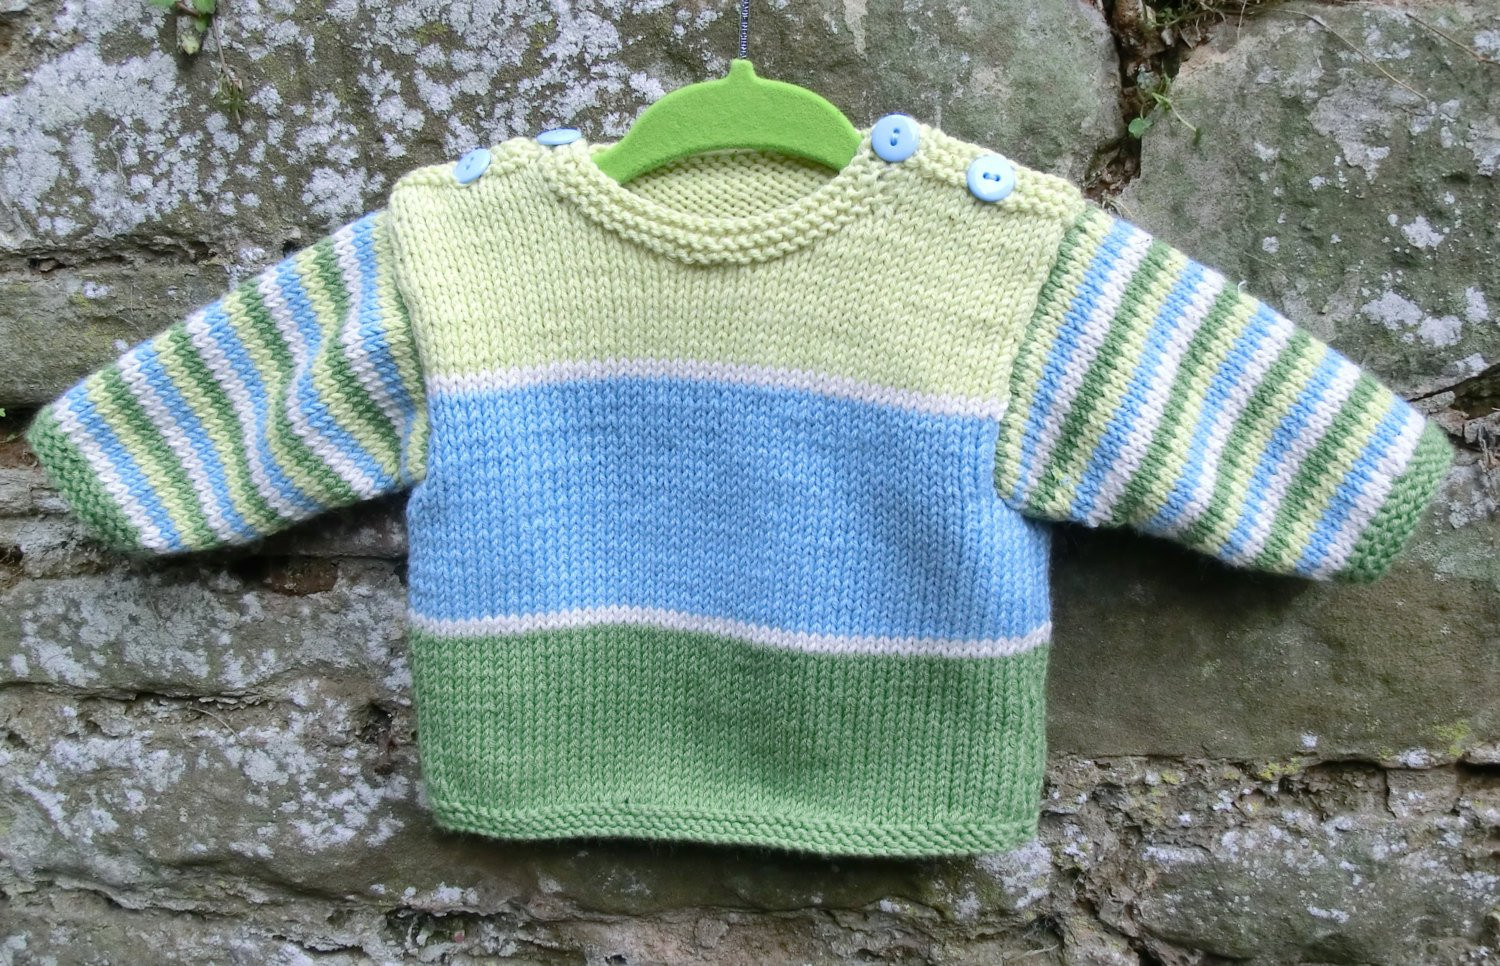 Sweater Knitting Patterns Awesome Stripy Baby Sweater Knitting Pattern Pdf Of Amazing 42 Models Sweater Knitting Patterns